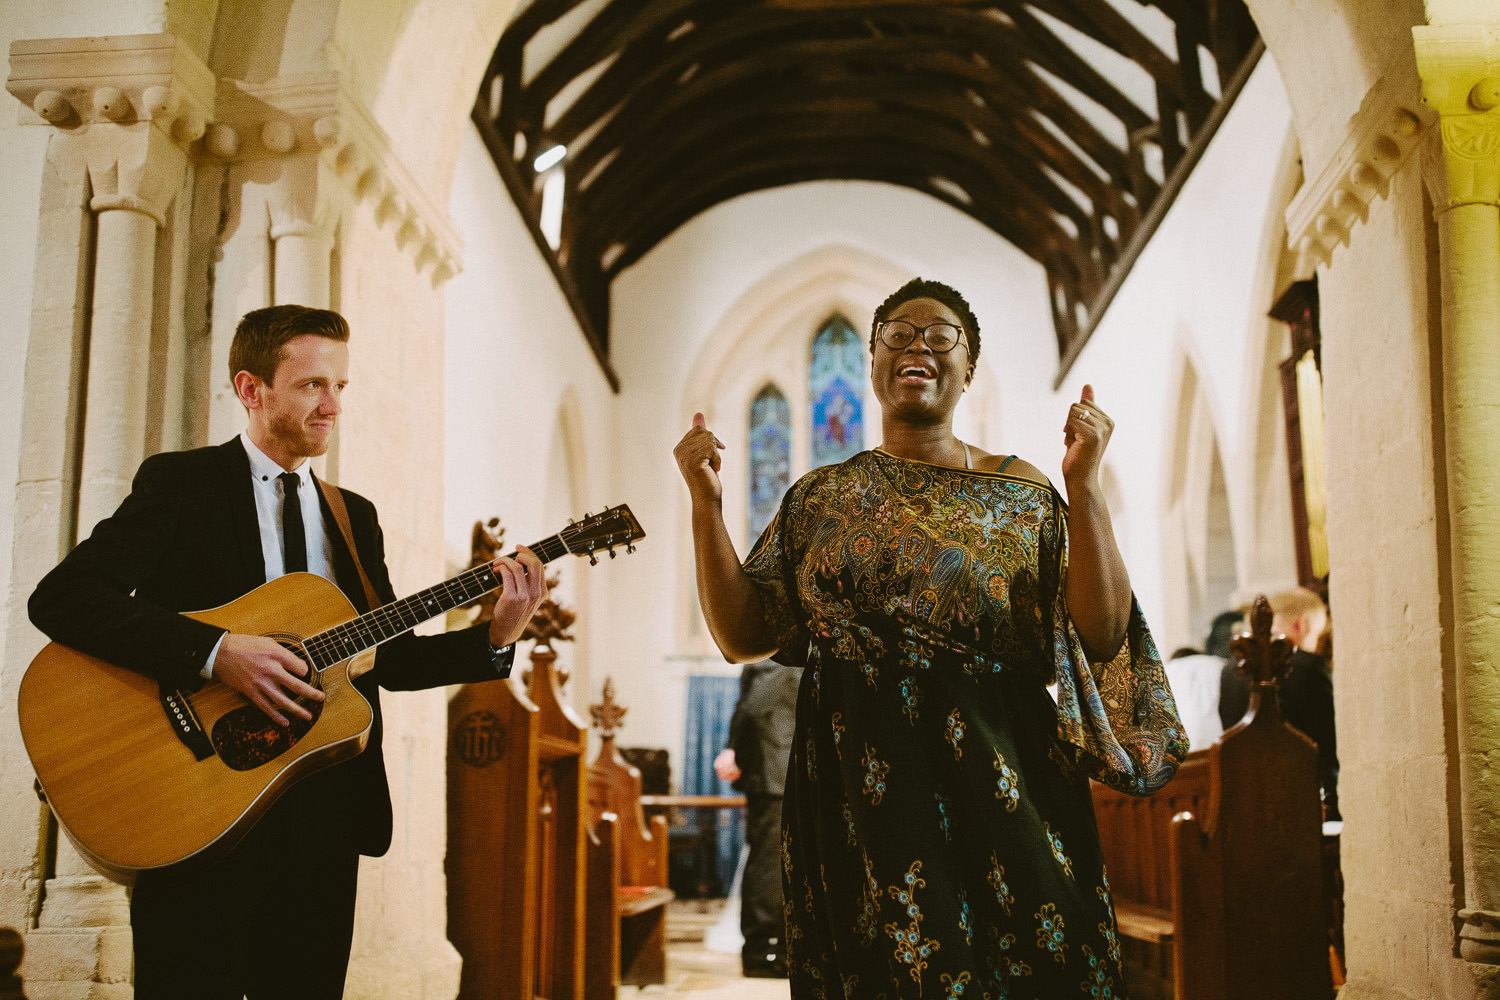 soul singer singing in church with guitarist beside her